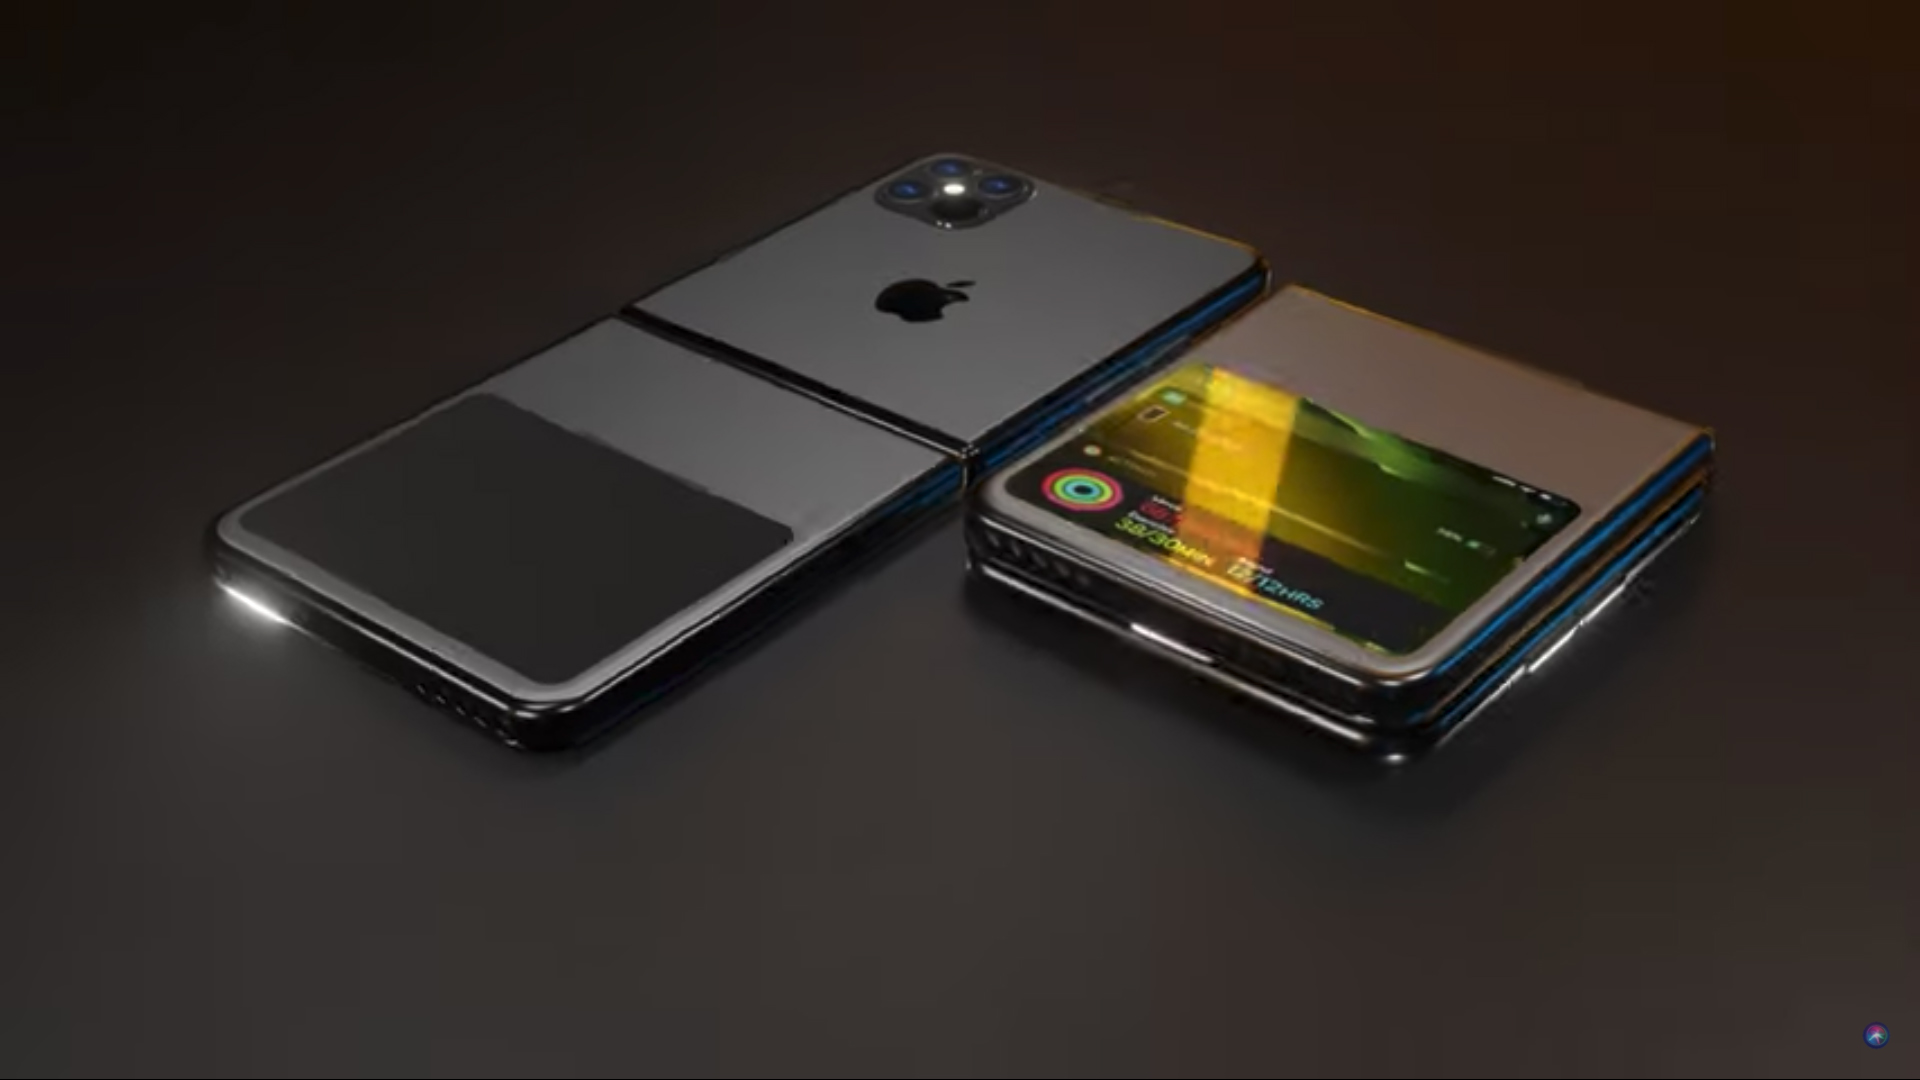 News on the Apple's Foldable smartphone